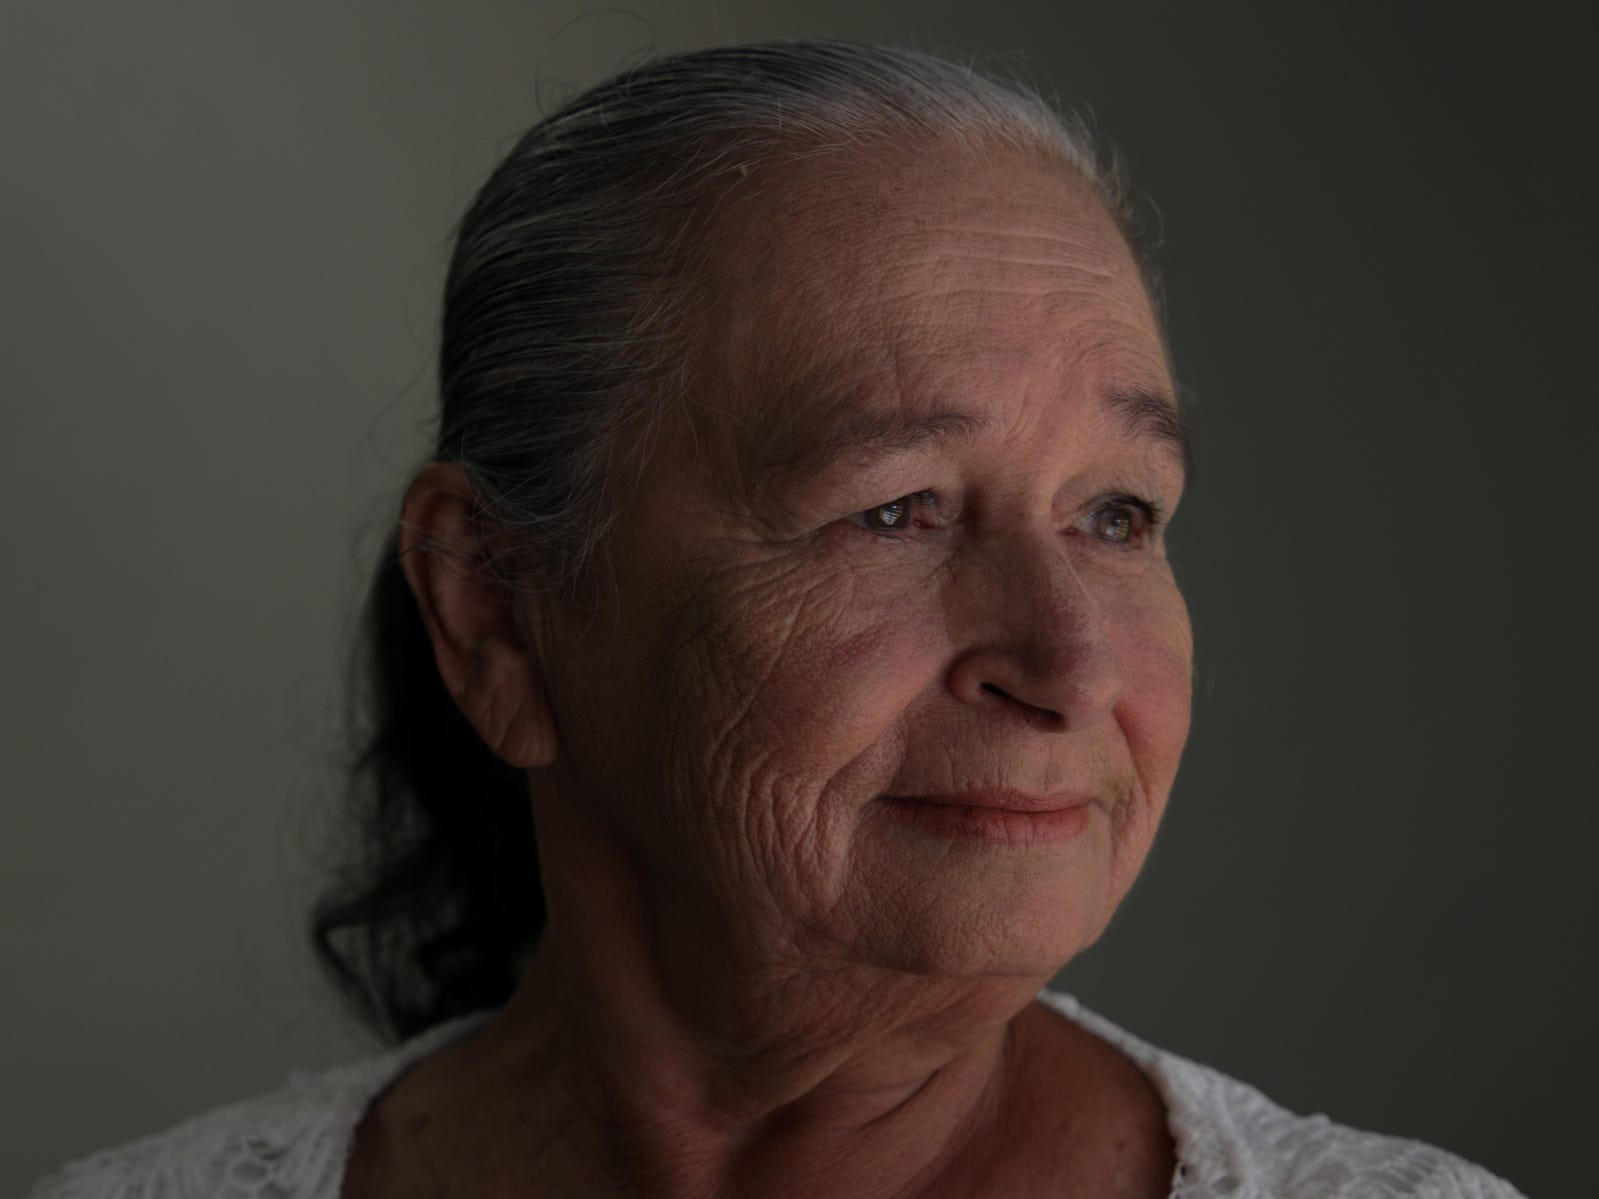 Carmen Maria Reyes, 70 of Aibonito attended a Ford Fund sponsored workshop on how to manage your emotions, helping her deal with PTSD caused by Hurricane Maria and its aftermath.